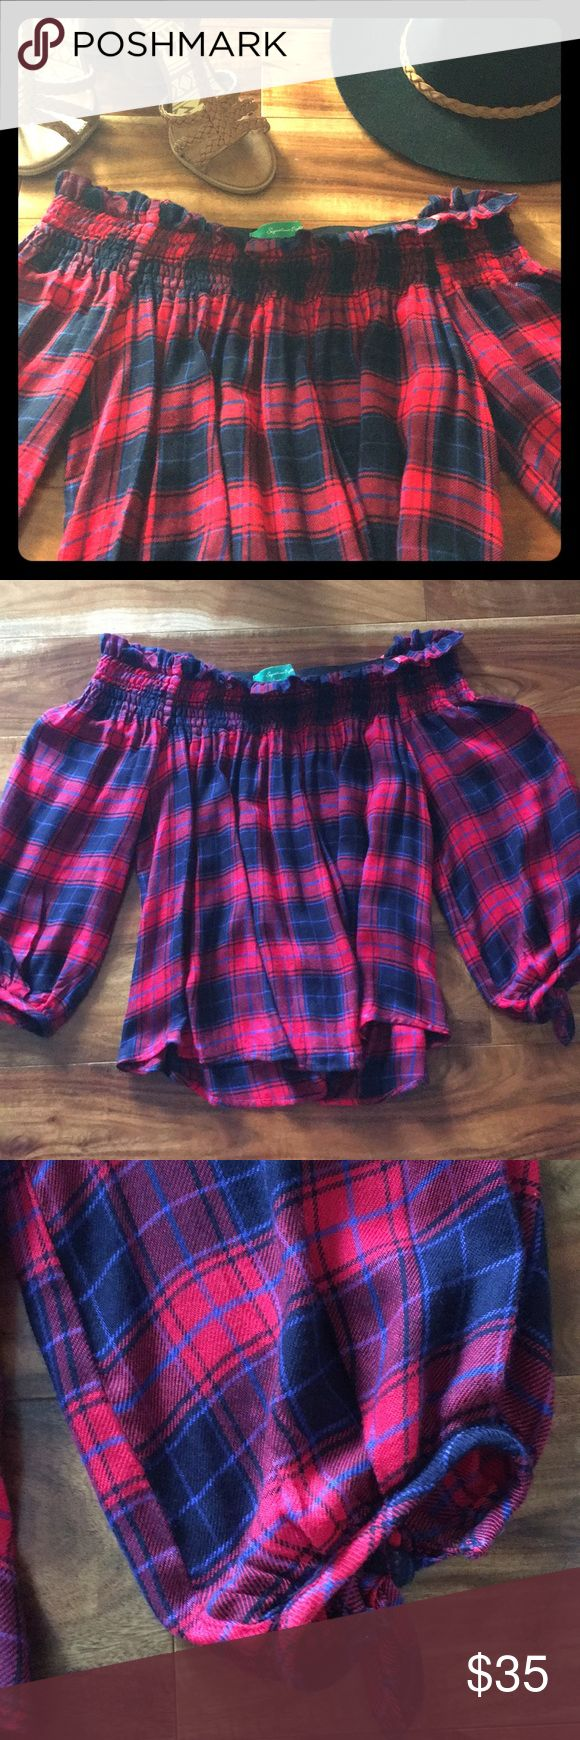 Vici Collection plaid off the shoulder top In great condition only worn twice! From vici collection a perfect piece for fall! Very stretchy elastic top with ruffles. 3/4 sleeves with adjustable ties as shown. Bold red navy blue and black color checkered print. Vici Collection Tops Blouses